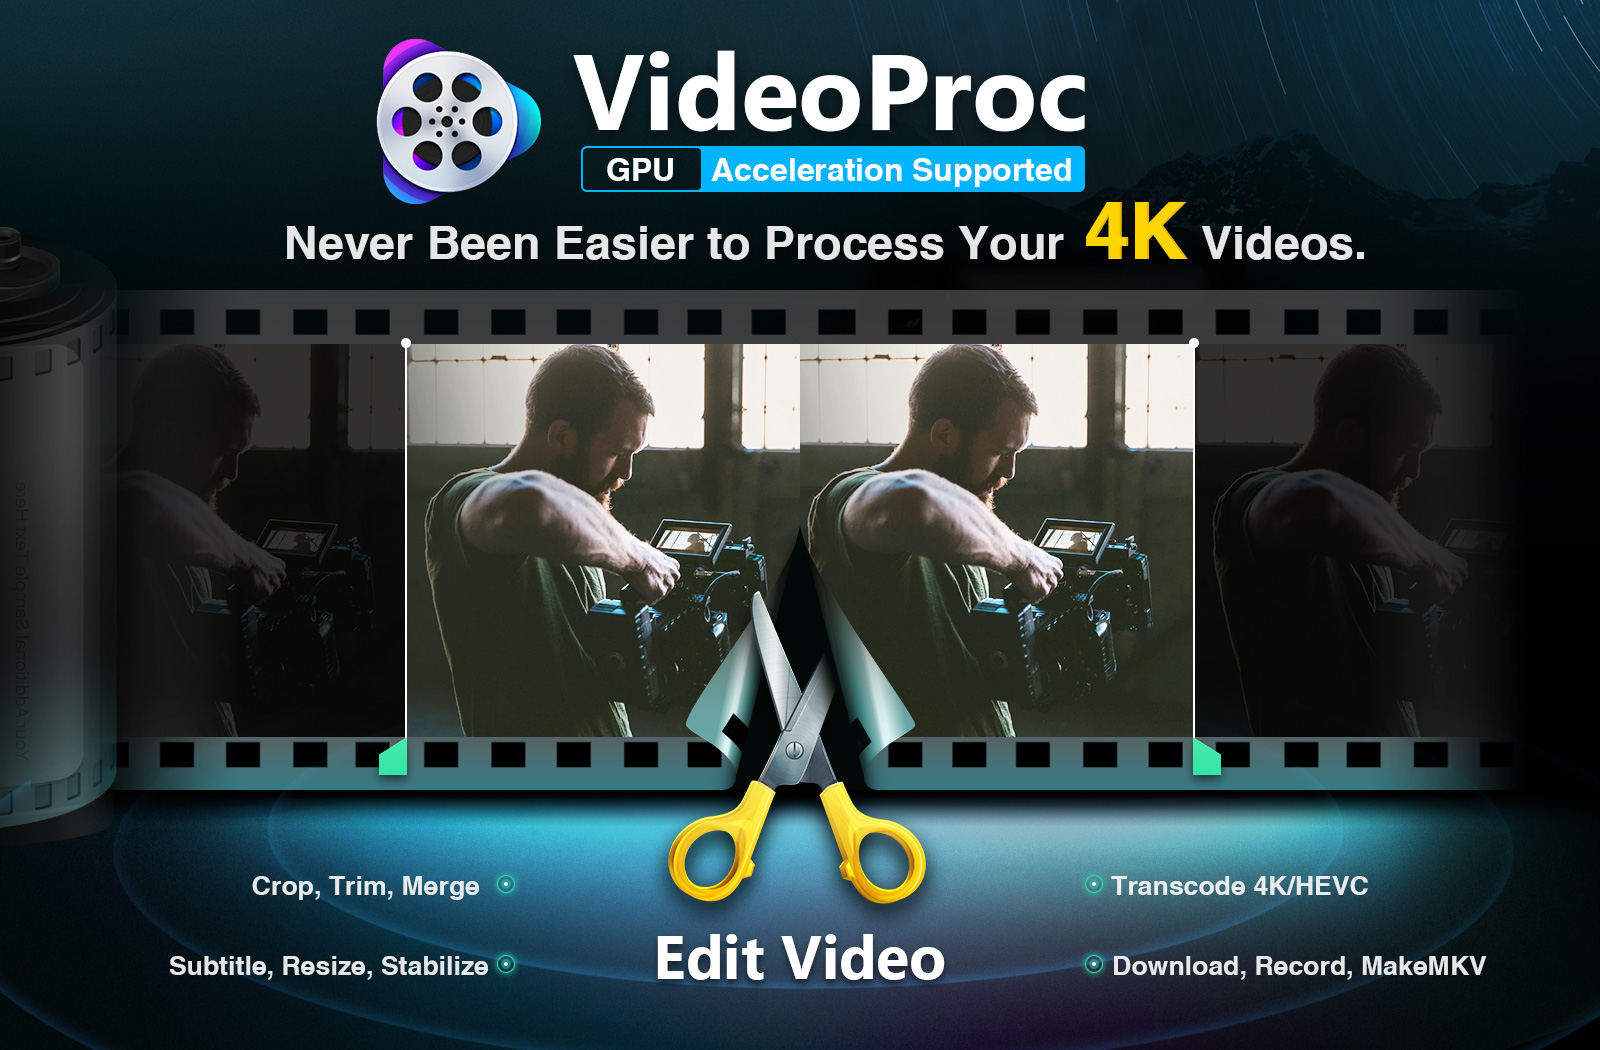 VideoProc Provides Creators with One-Stop Video Processing Software 8